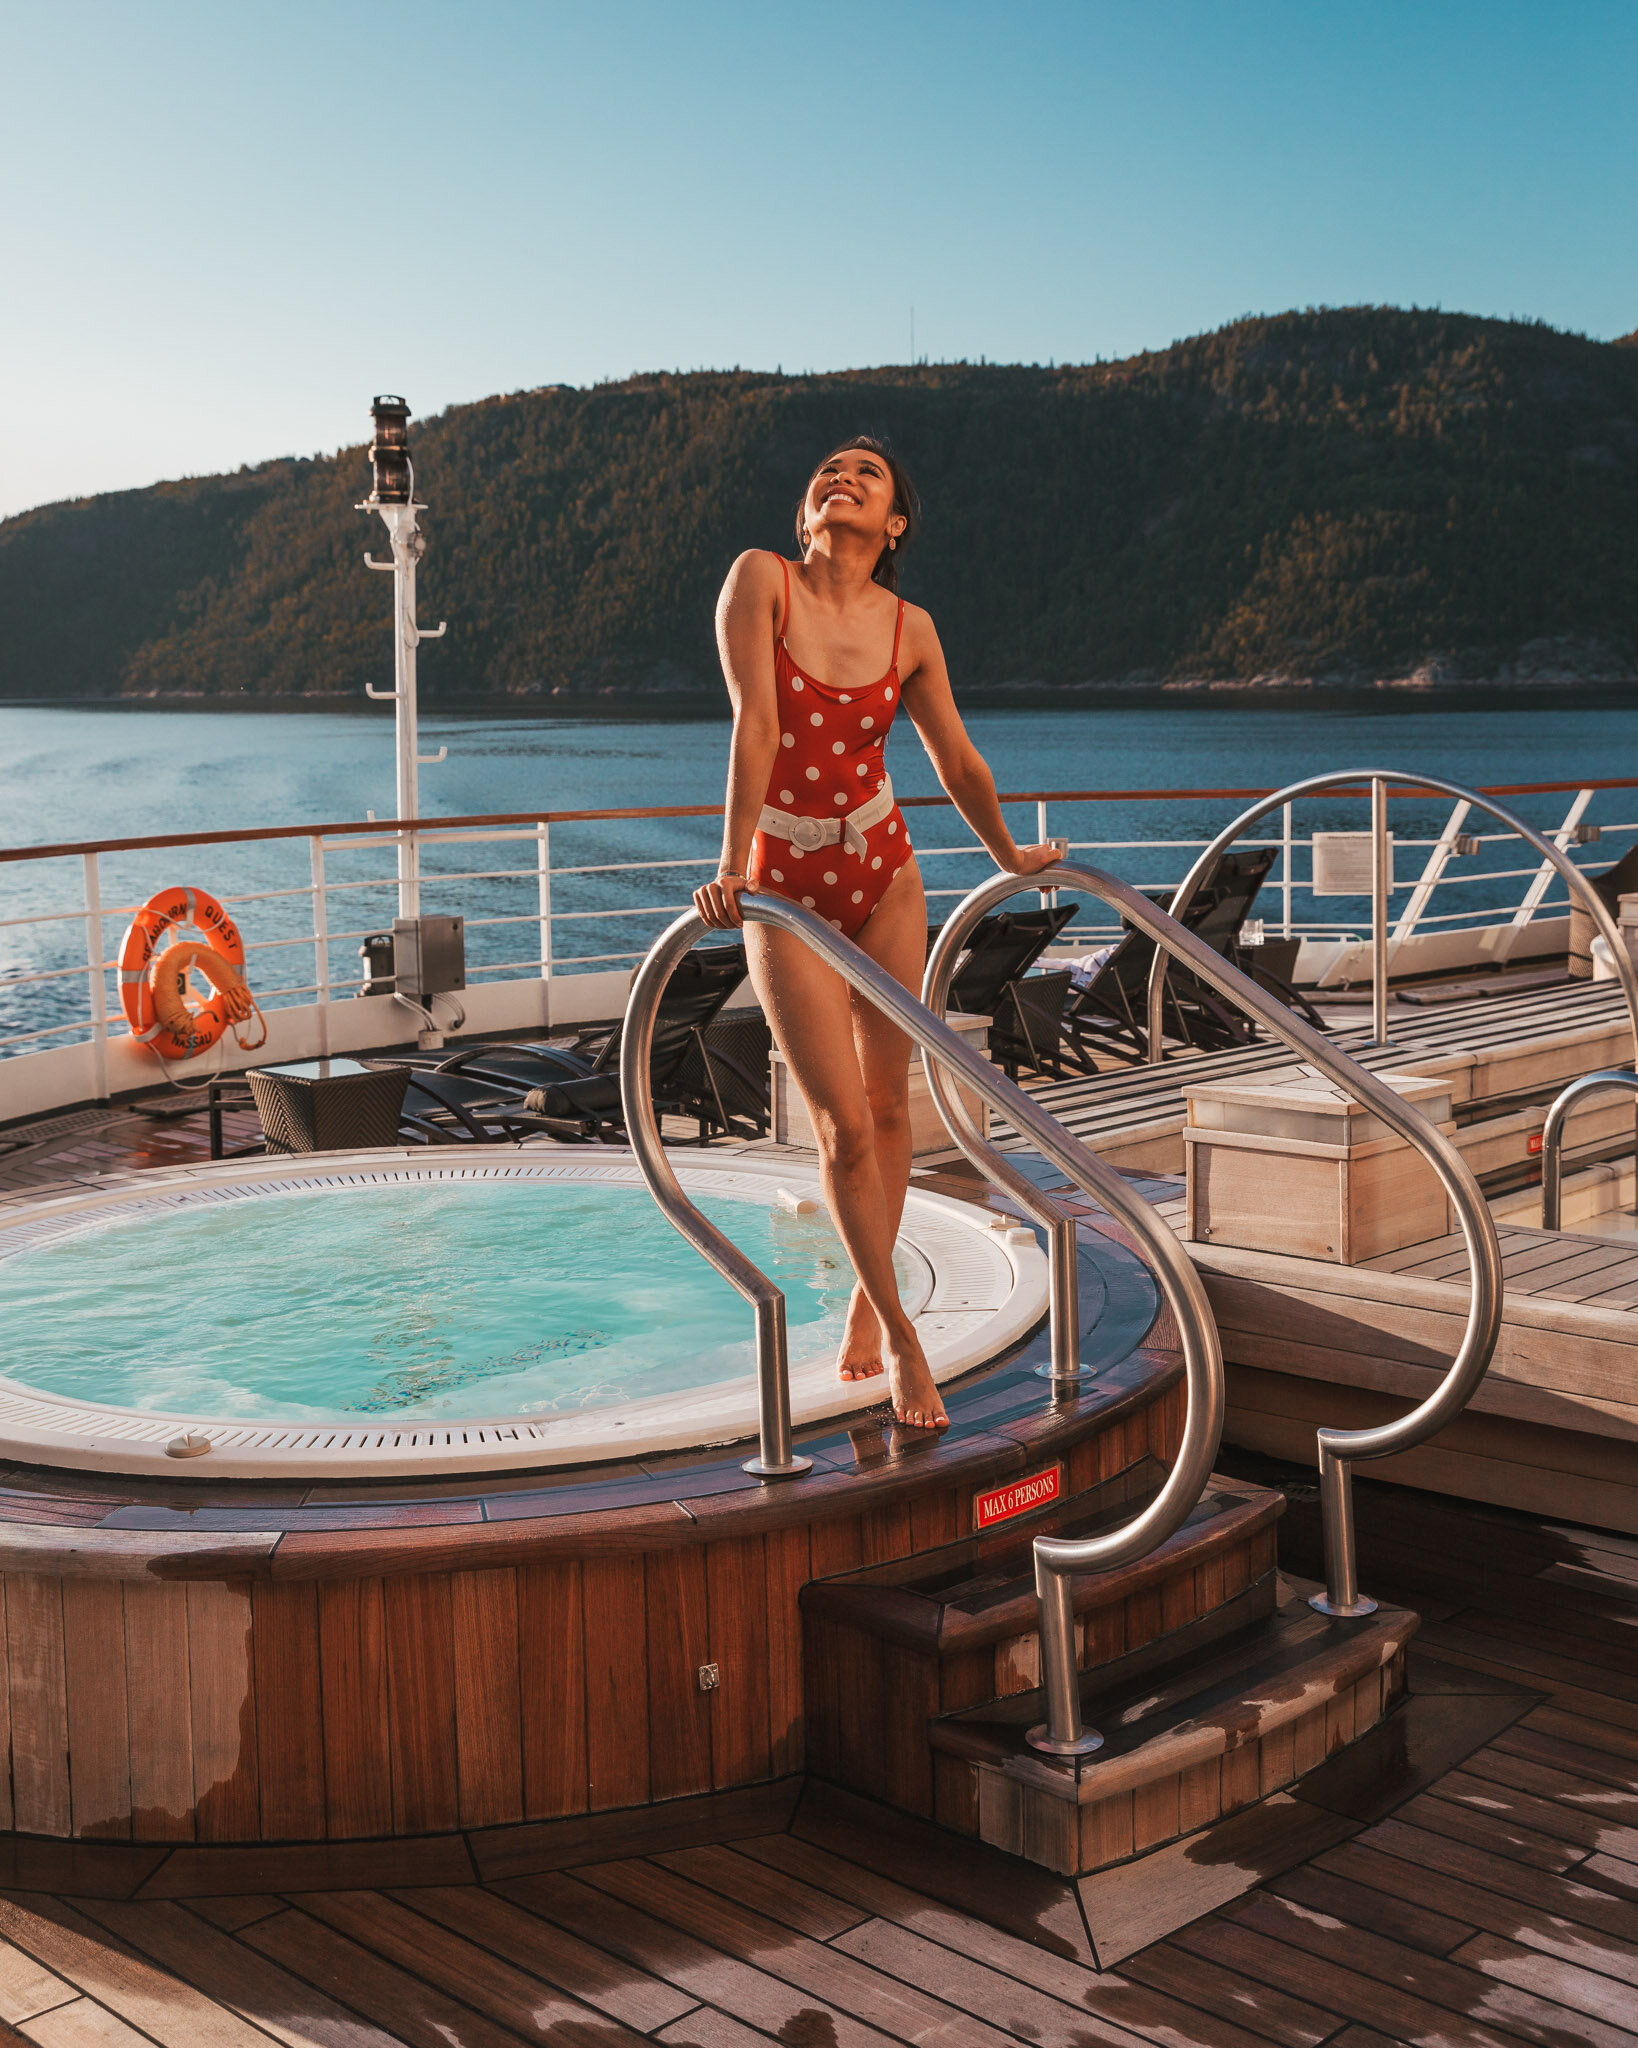 Deck 5 hot tub on the Seabourn Quest // Cruise Review: 11-Day New England & Canada on the Seabourn Quest // #readysetjetset #canada #cruise #luxury #travel #cruising